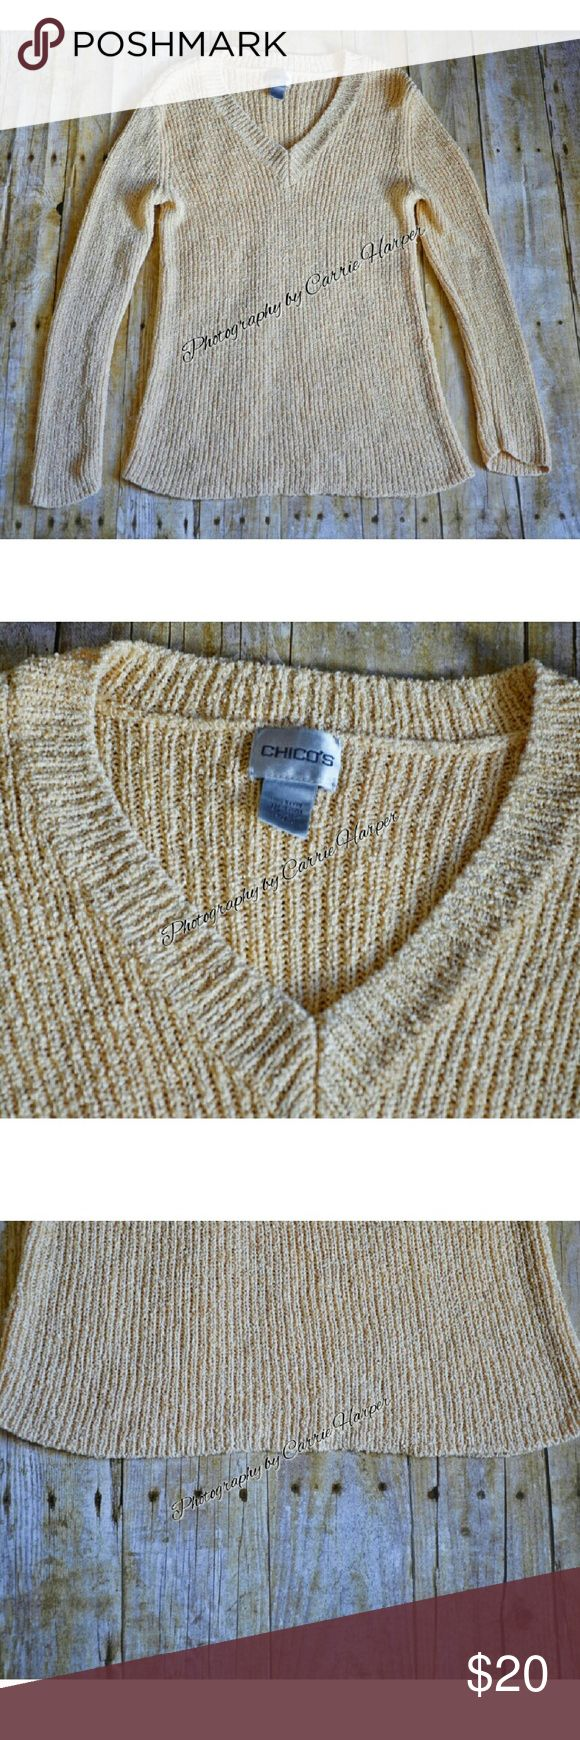 Women's V Neck Sweater by Chico's Size 2 (large) Absolutely gorgeous in person! 100% Rayon Bust 34 inches Length 28 Inches This sweater has some weight to it! Smoke free, dog friendly home Chico's Sweaters V-Necks